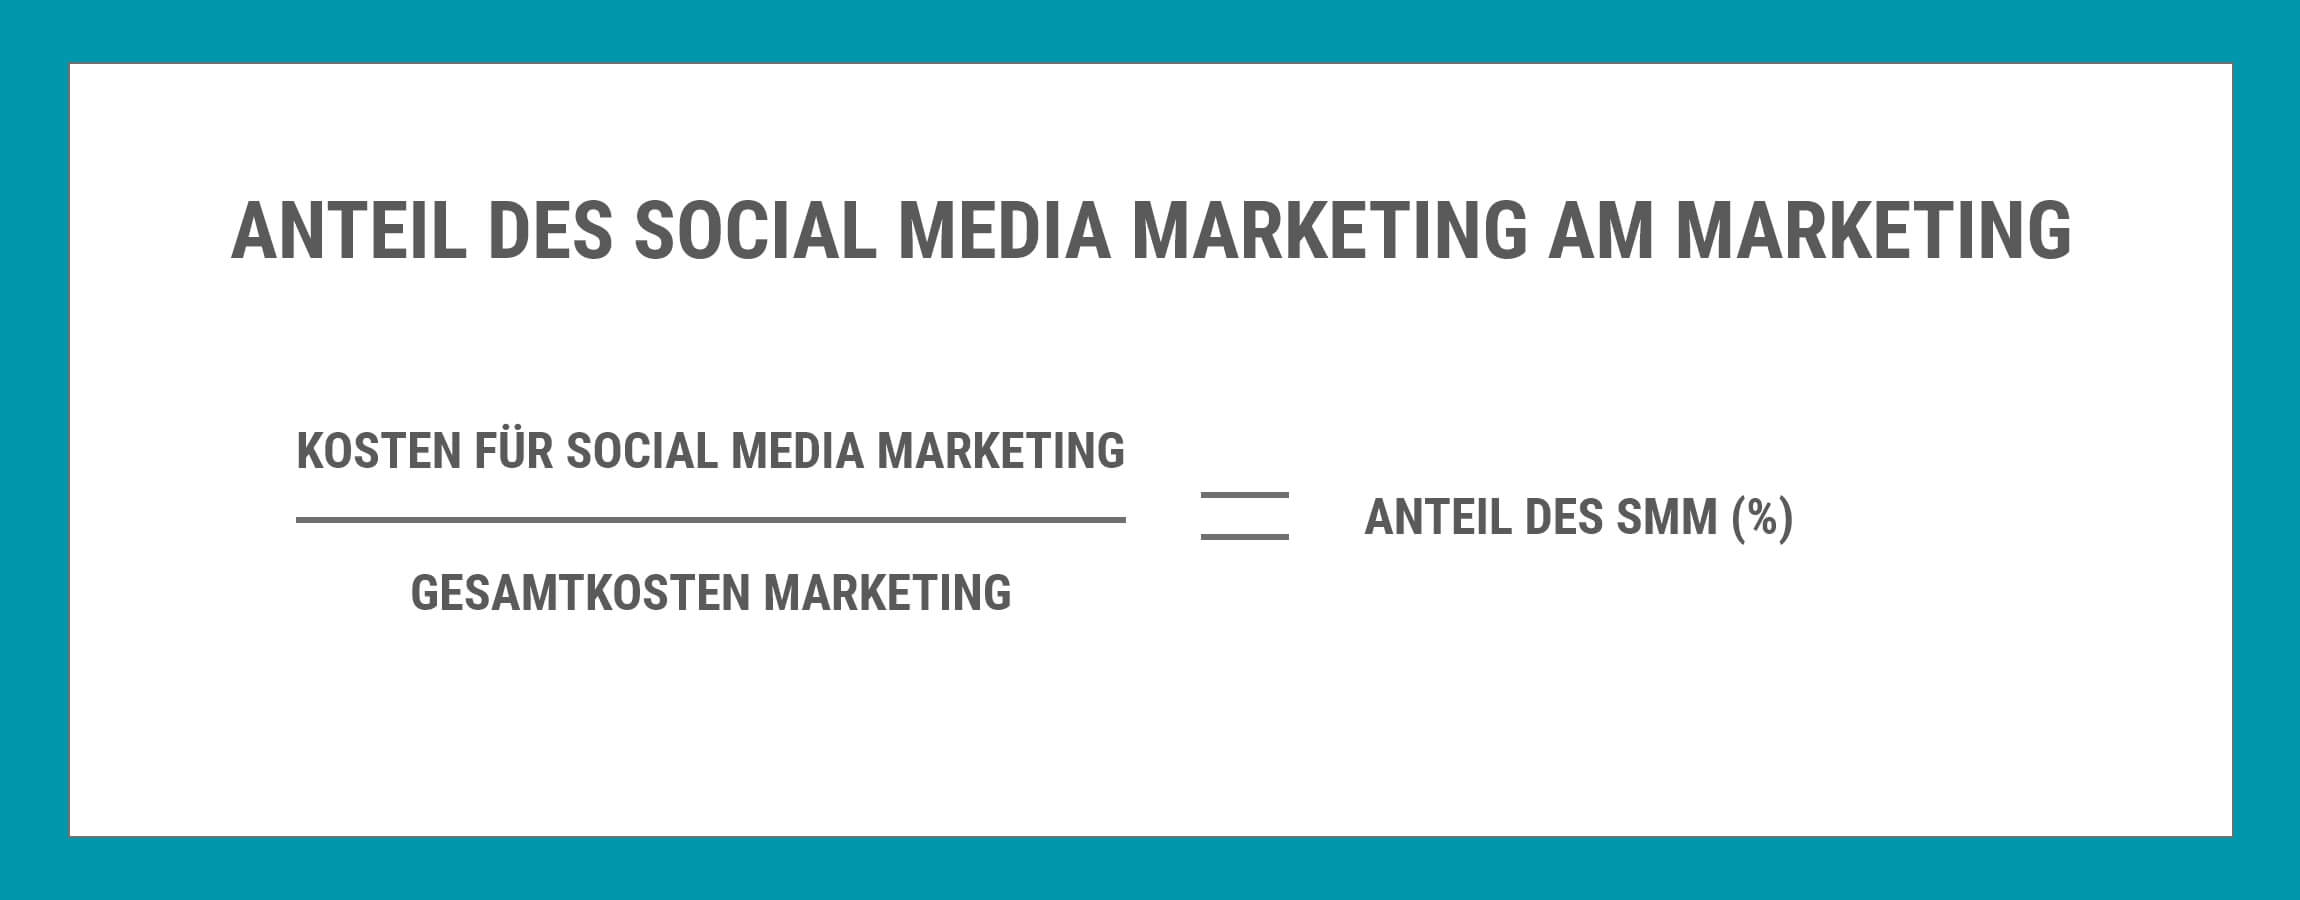 Social Media Marketing Anteil am Gesamtmarketing